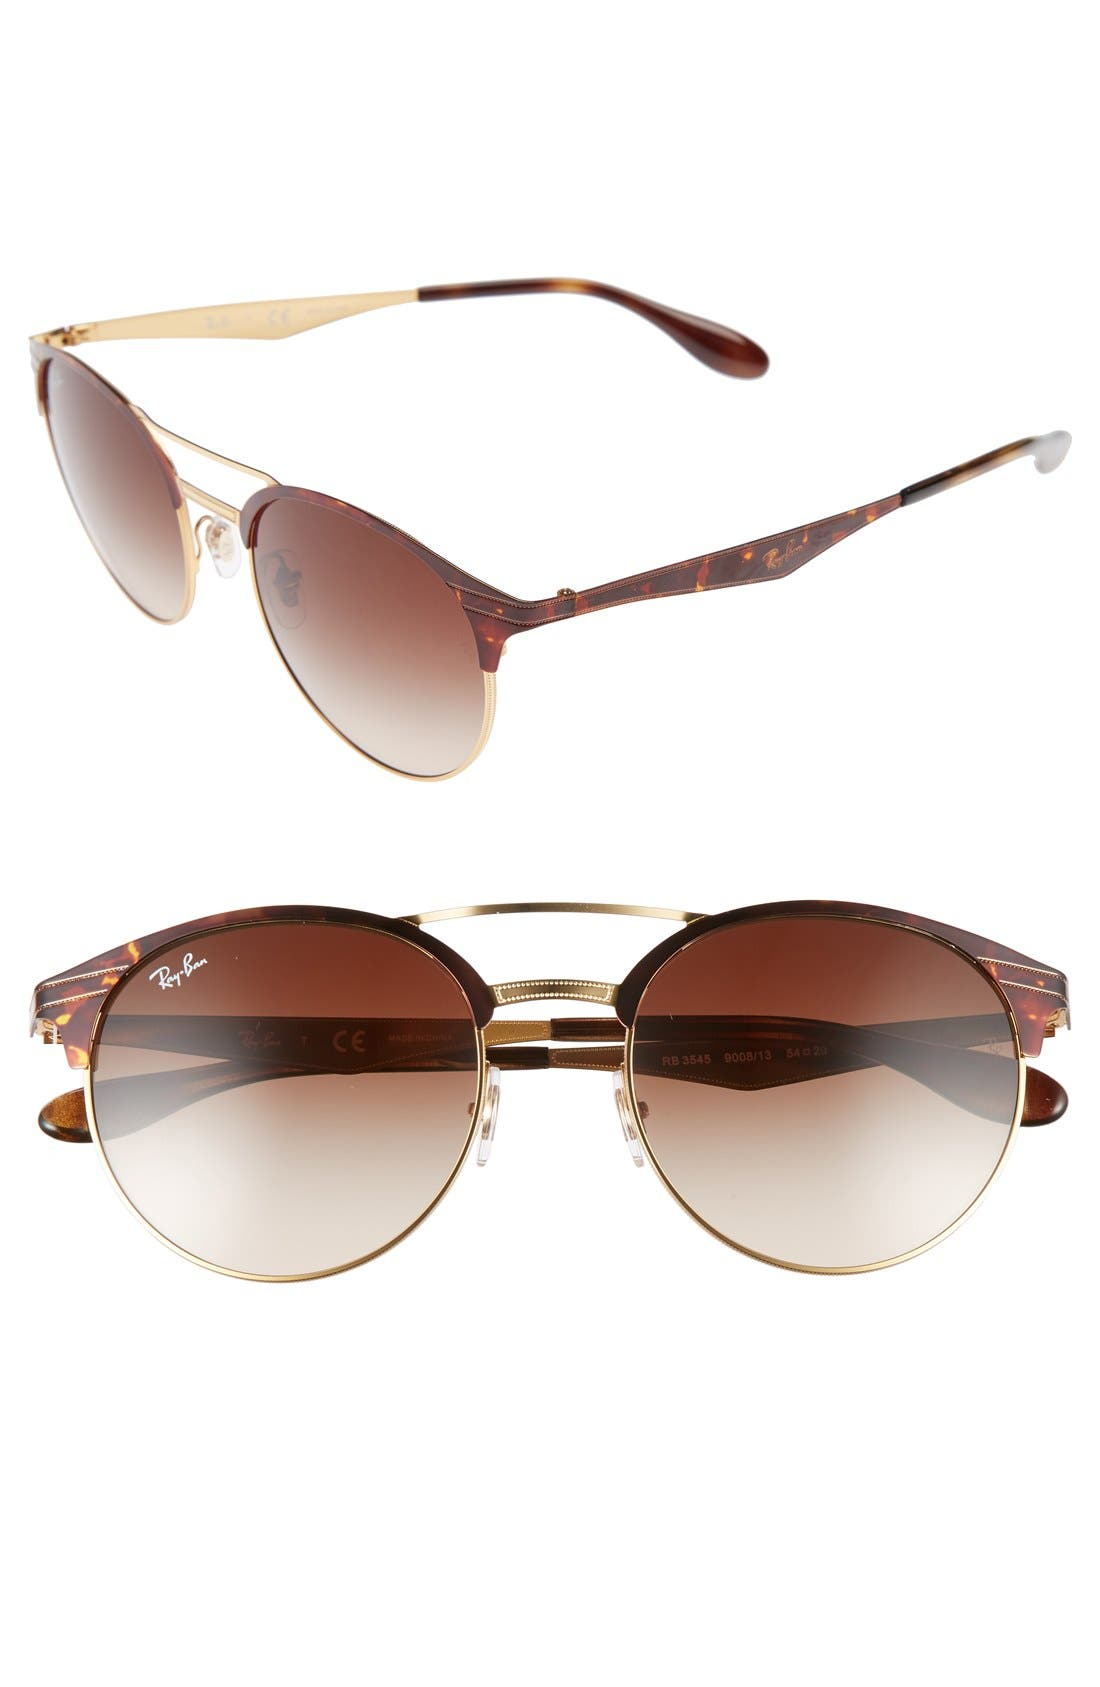 Highstreet 54mm Round Sunglasses,                         Main,                         color, 001